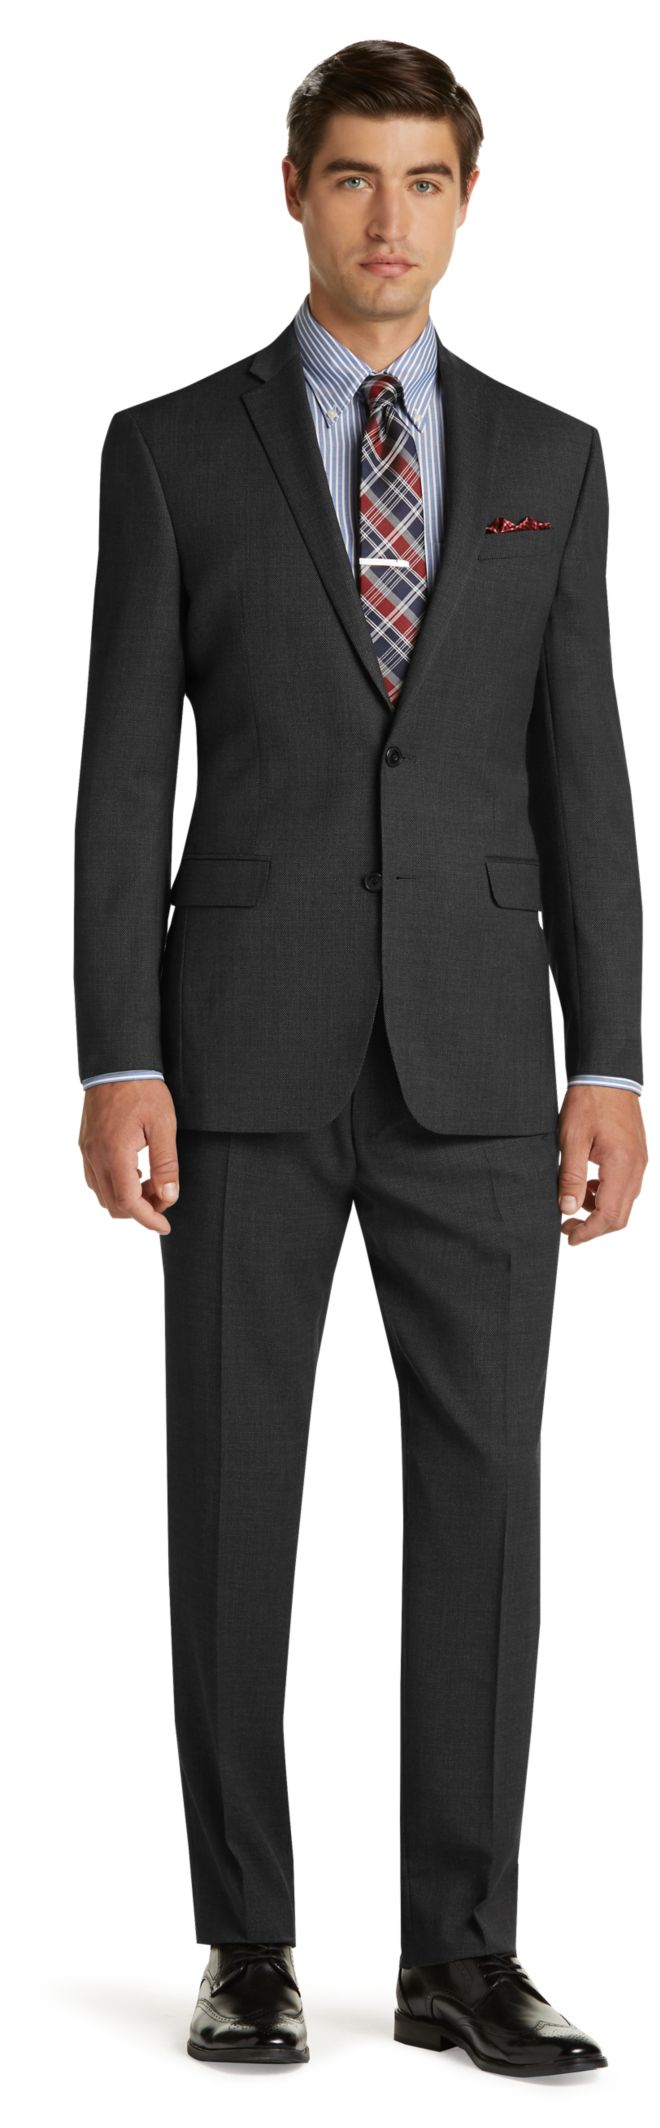 1905 Slim Fit Suit - 1905 Suits | Jos A Bank